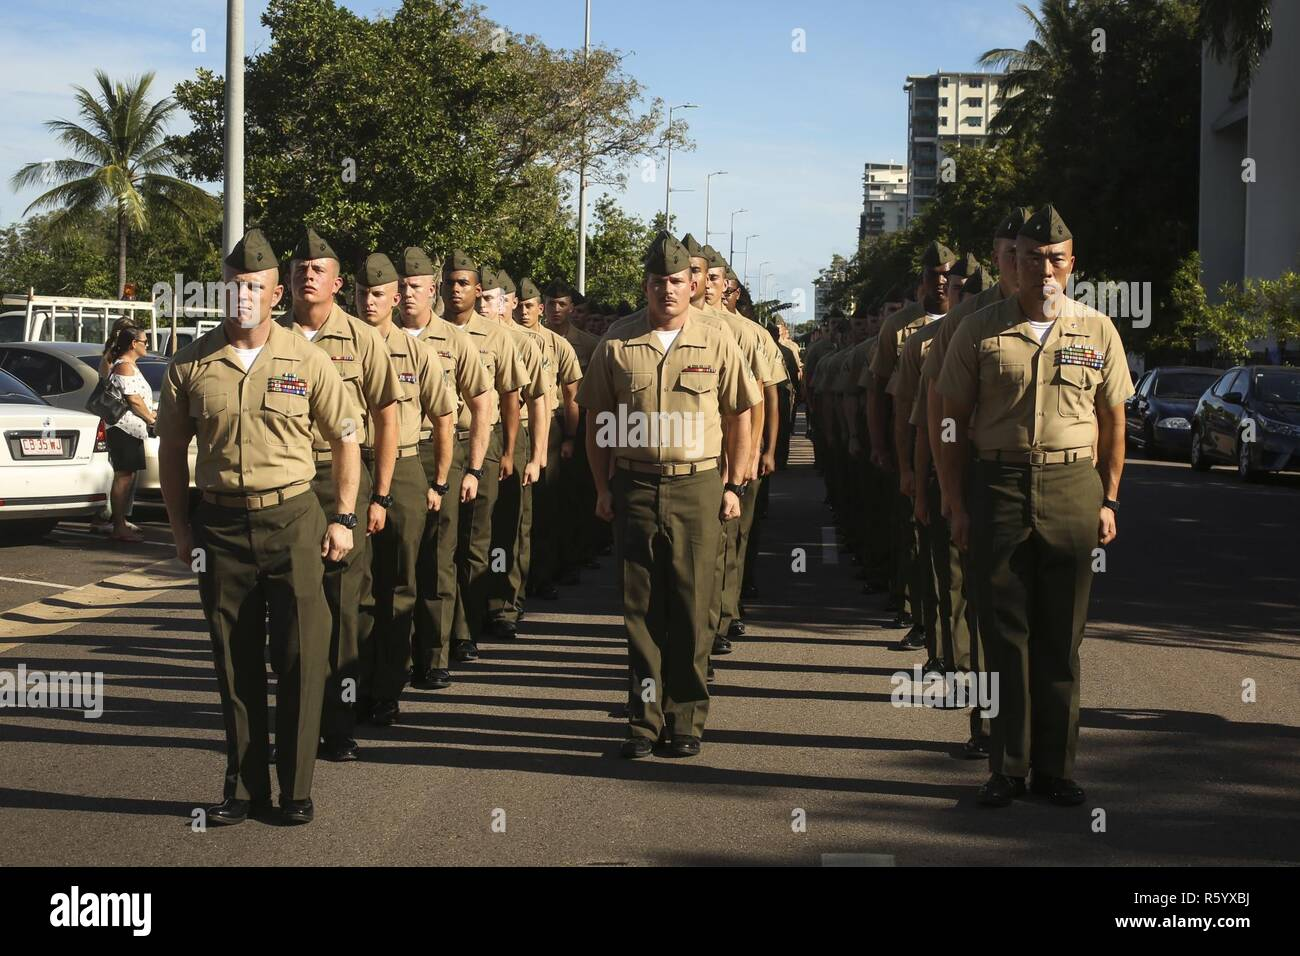 DARWIN, Australia – U.S. Marines with 3rd Battalion, 4th Marine Regiment, 1st Marine Division, Marine Rotational Darwin 17.2, stand ready to march during Australian and New Zealand Army Corps (ANZAC) Day, April 25, 2017. ANZAC Day is observed on April 25th and is a national day of remembrance in Australia and New Zealand that commemorates their countrymen who served and gave all at Gallipoli against the Ottoman Empire in World War I. Stock Photo